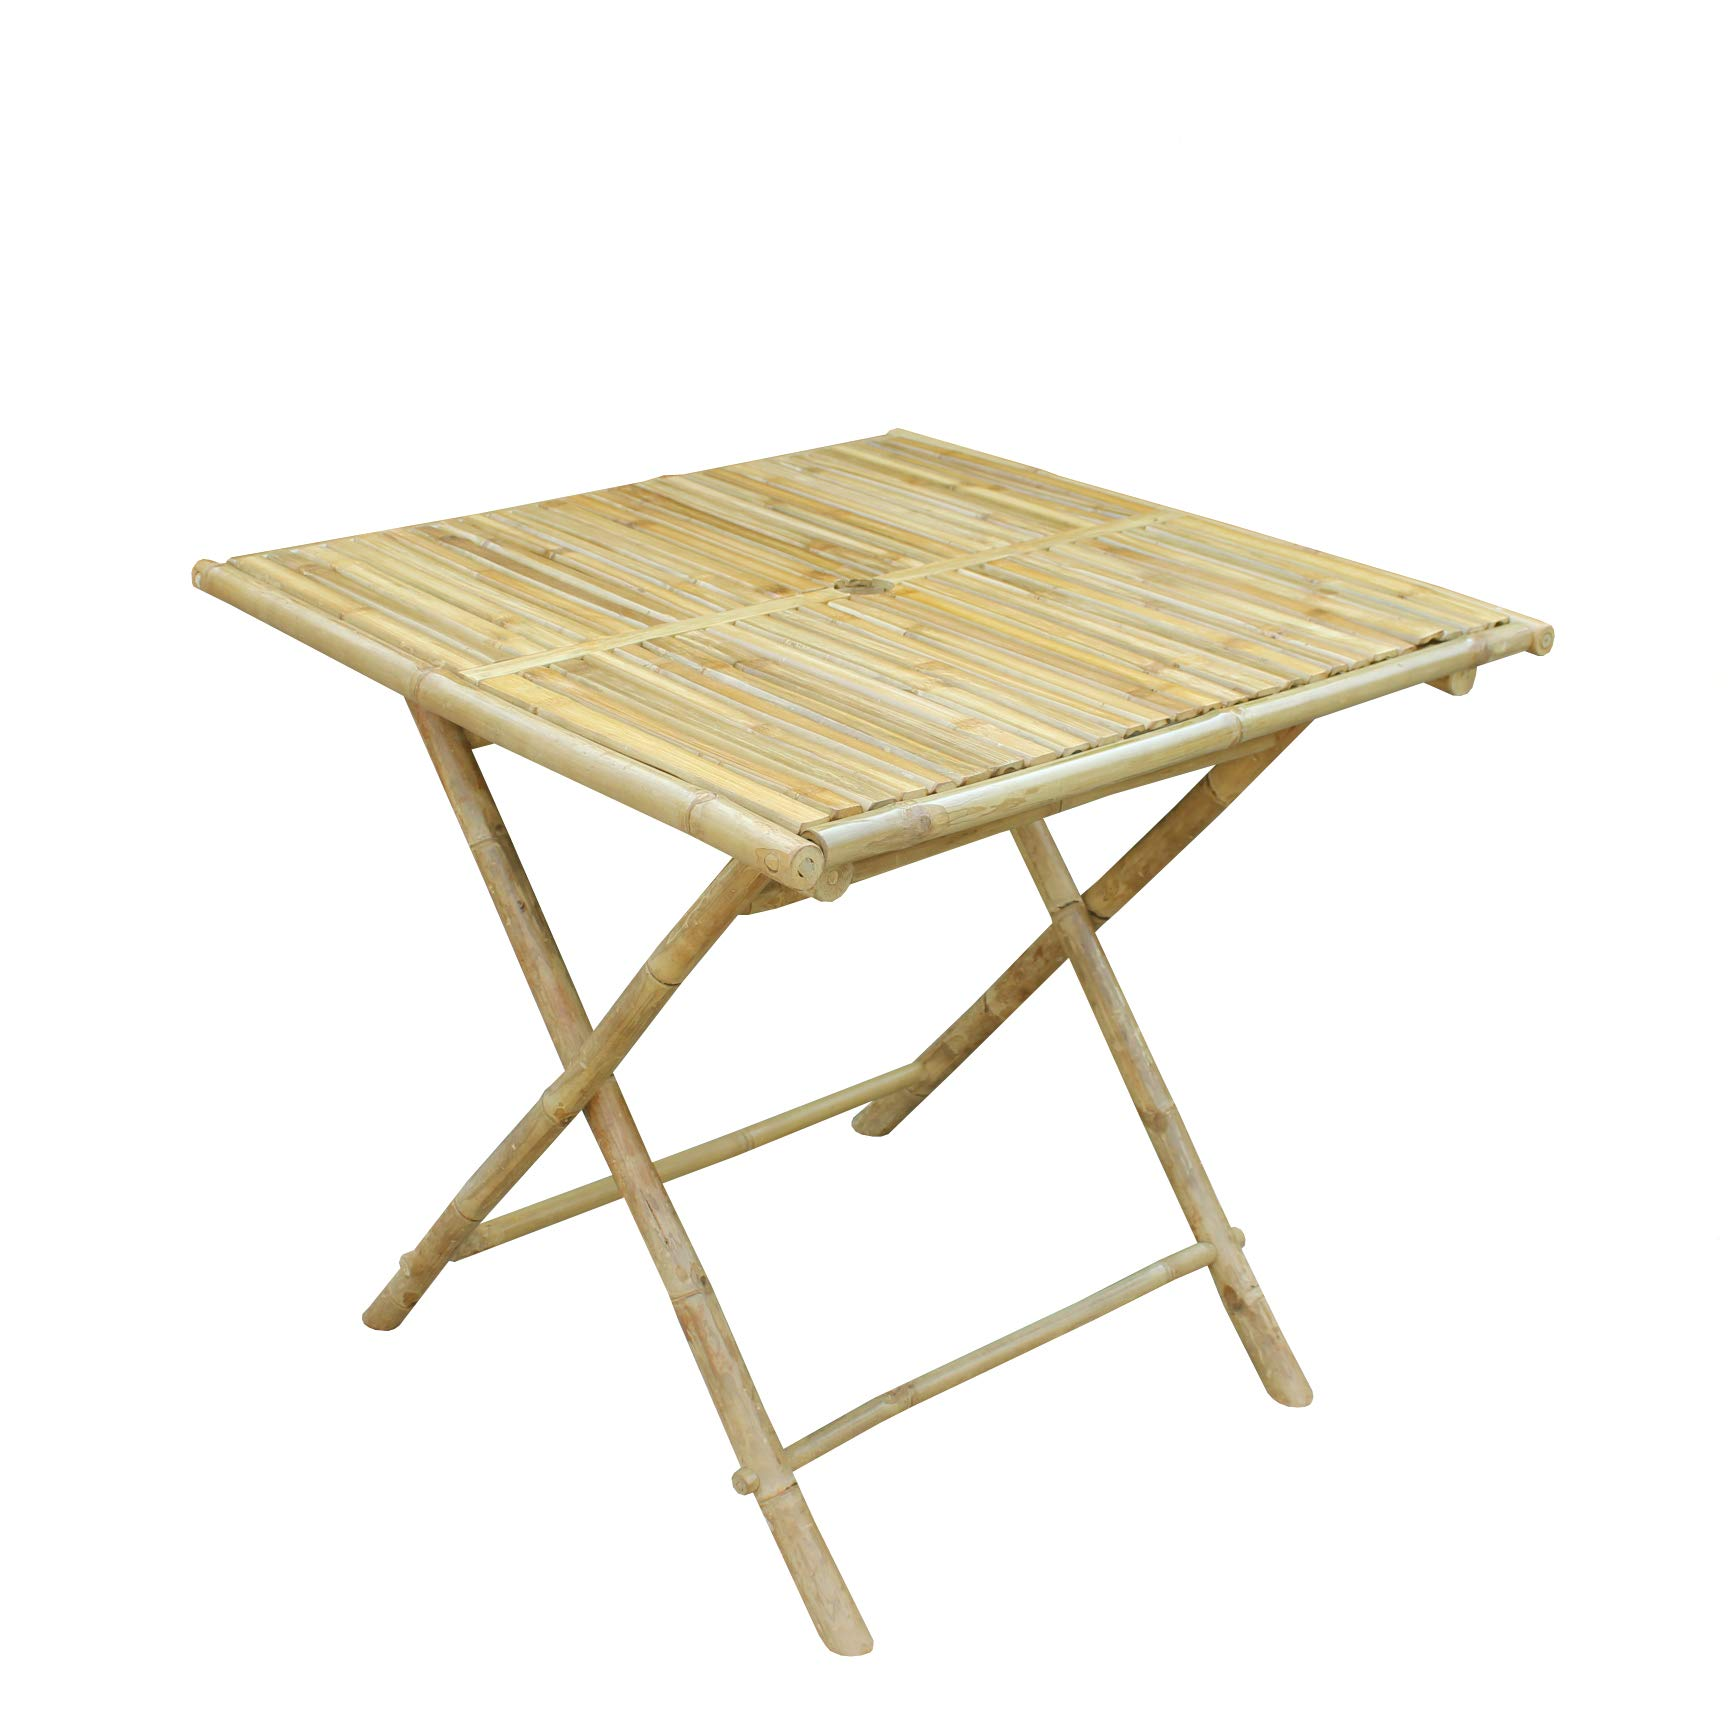 Zero Emission World Bamboo Hand Crafted Collapsible Table, Square